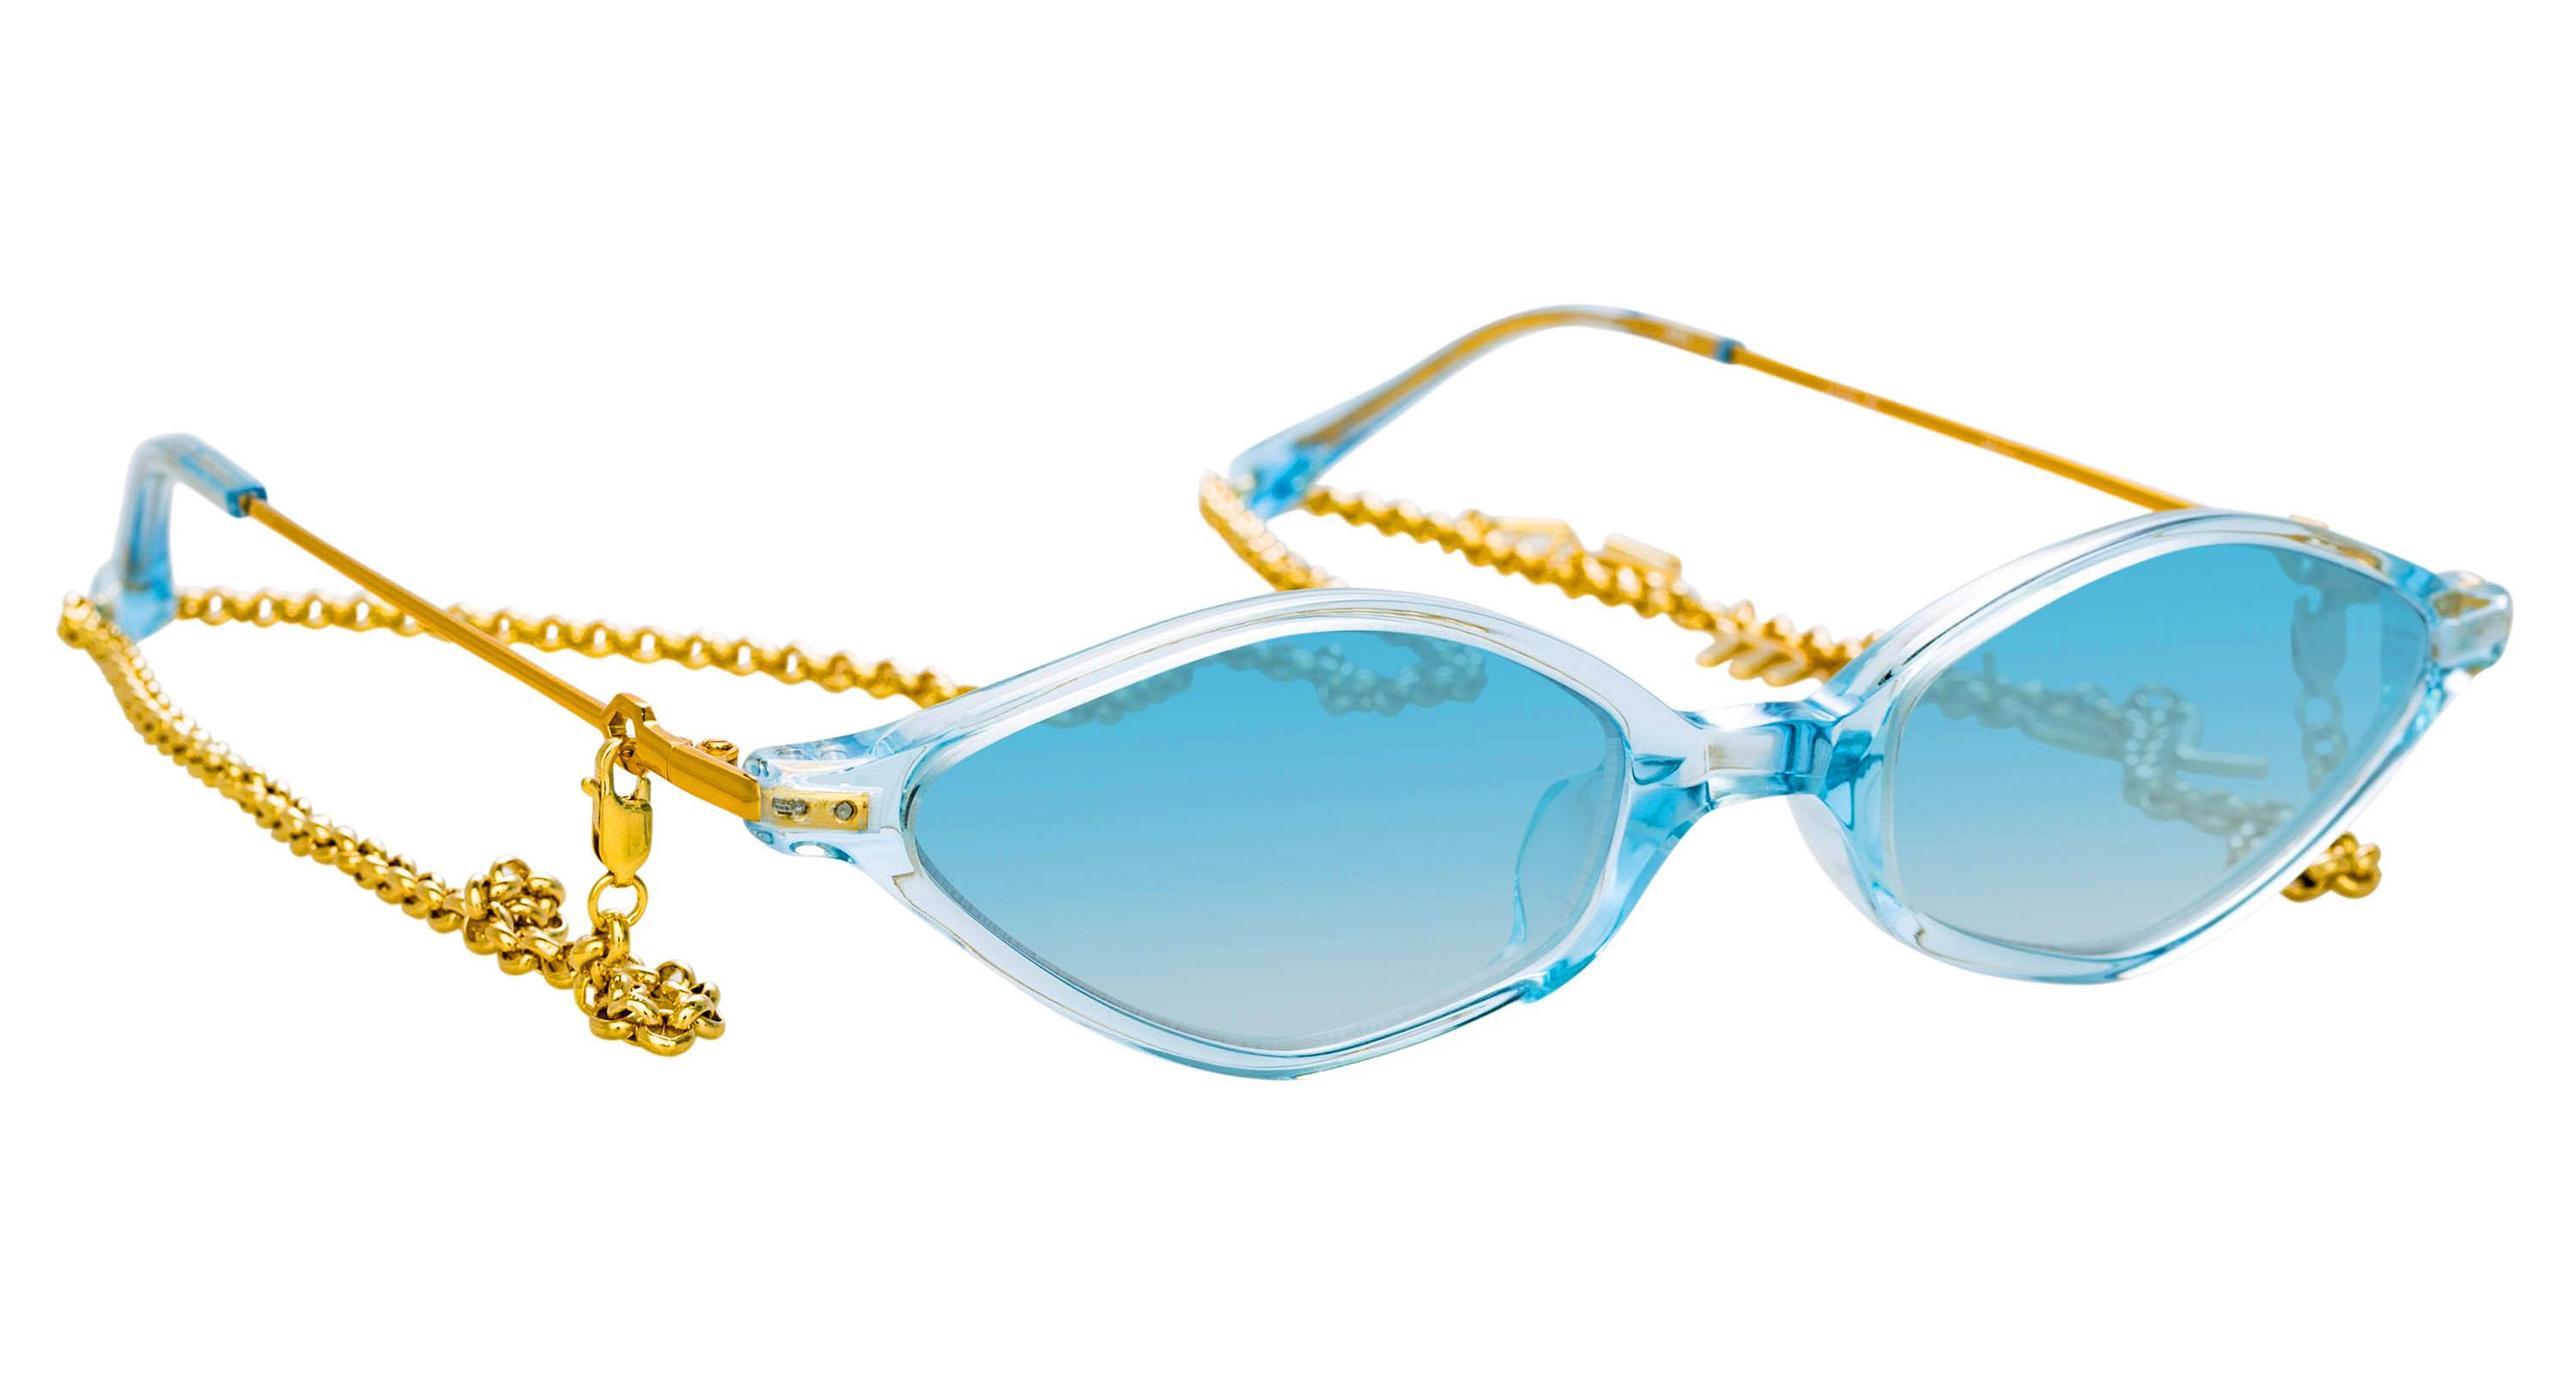 Blue Linda Farrow Angular Cat-Eye sunglasses with a detachable 18k gold-plated brass chain in collaboration with Alessandra Rich